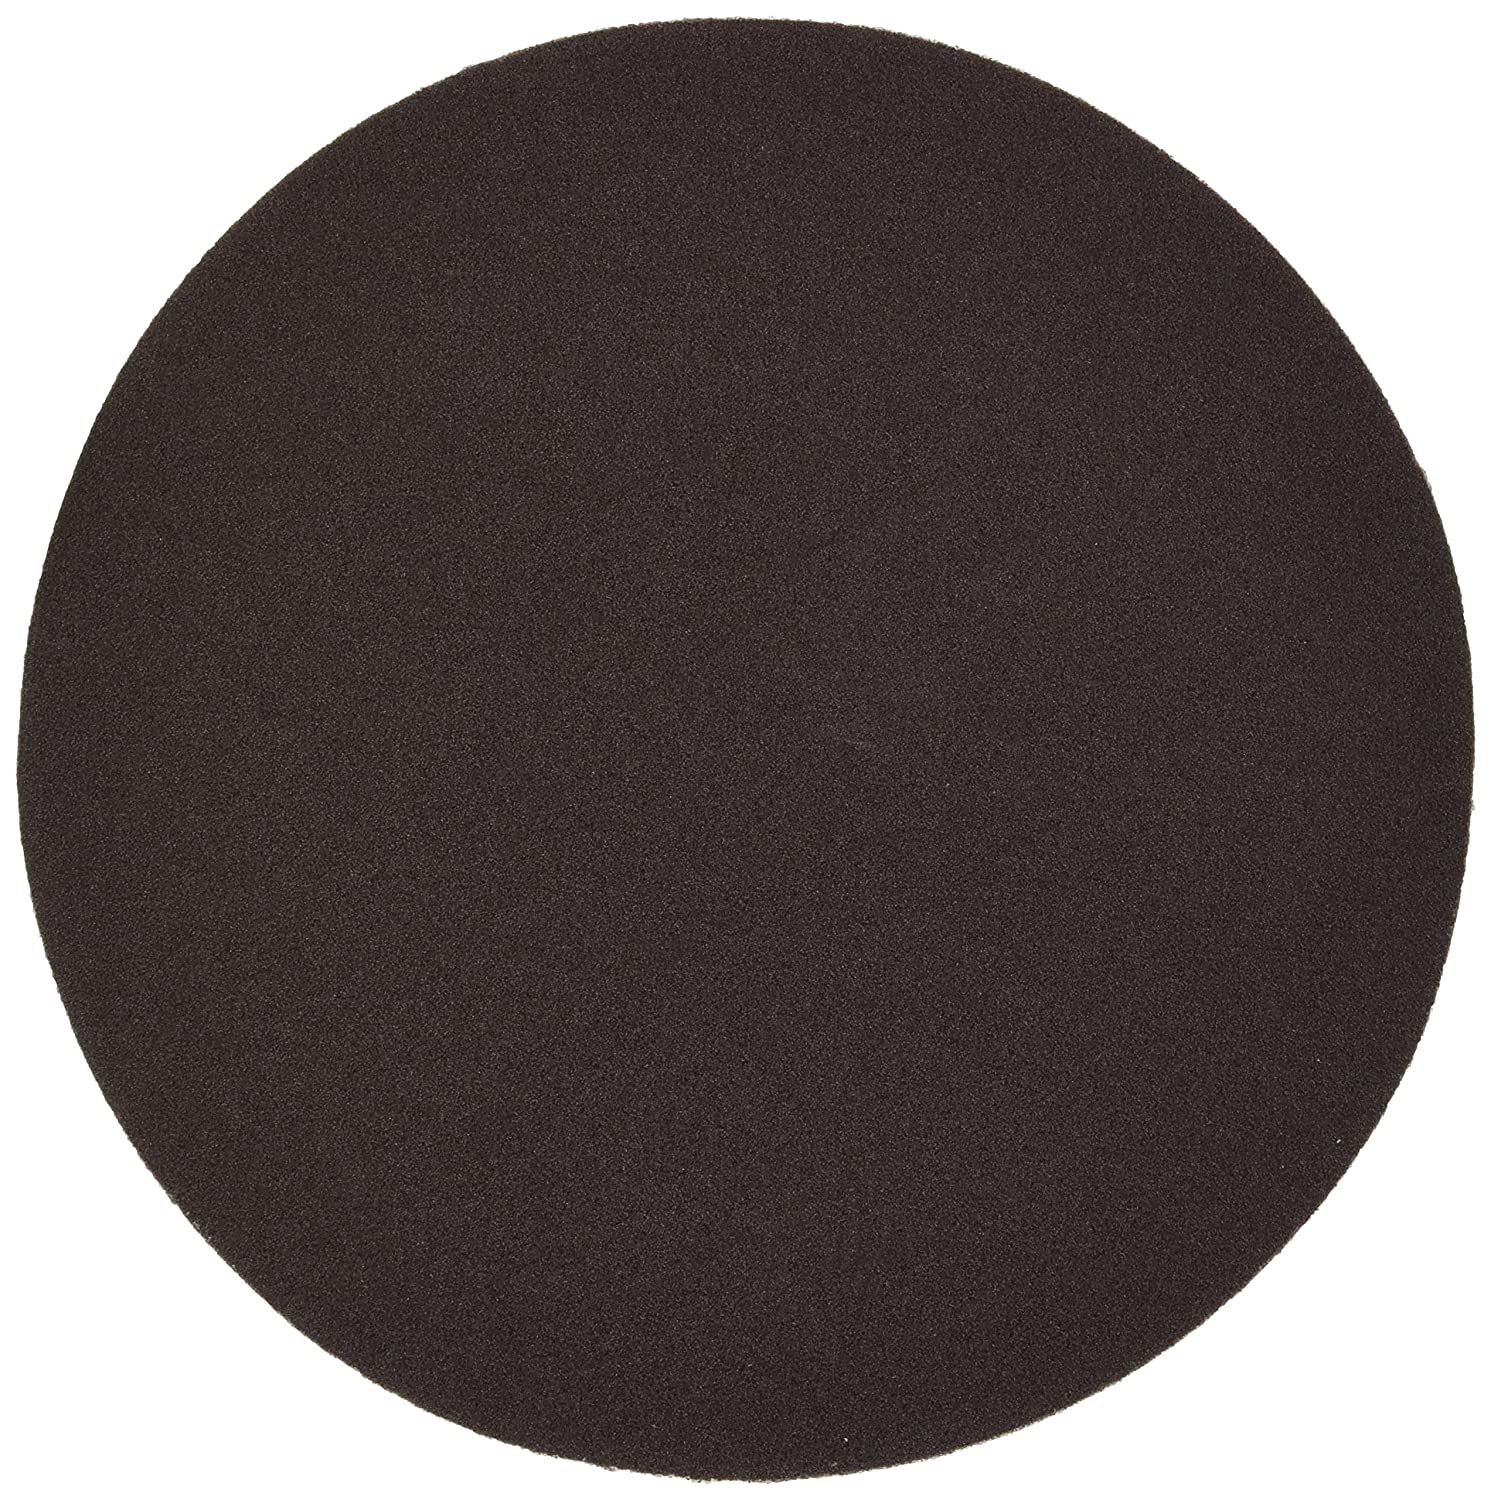 Delta 31-348 120 Grit Self-Adhesive Sanding Disc